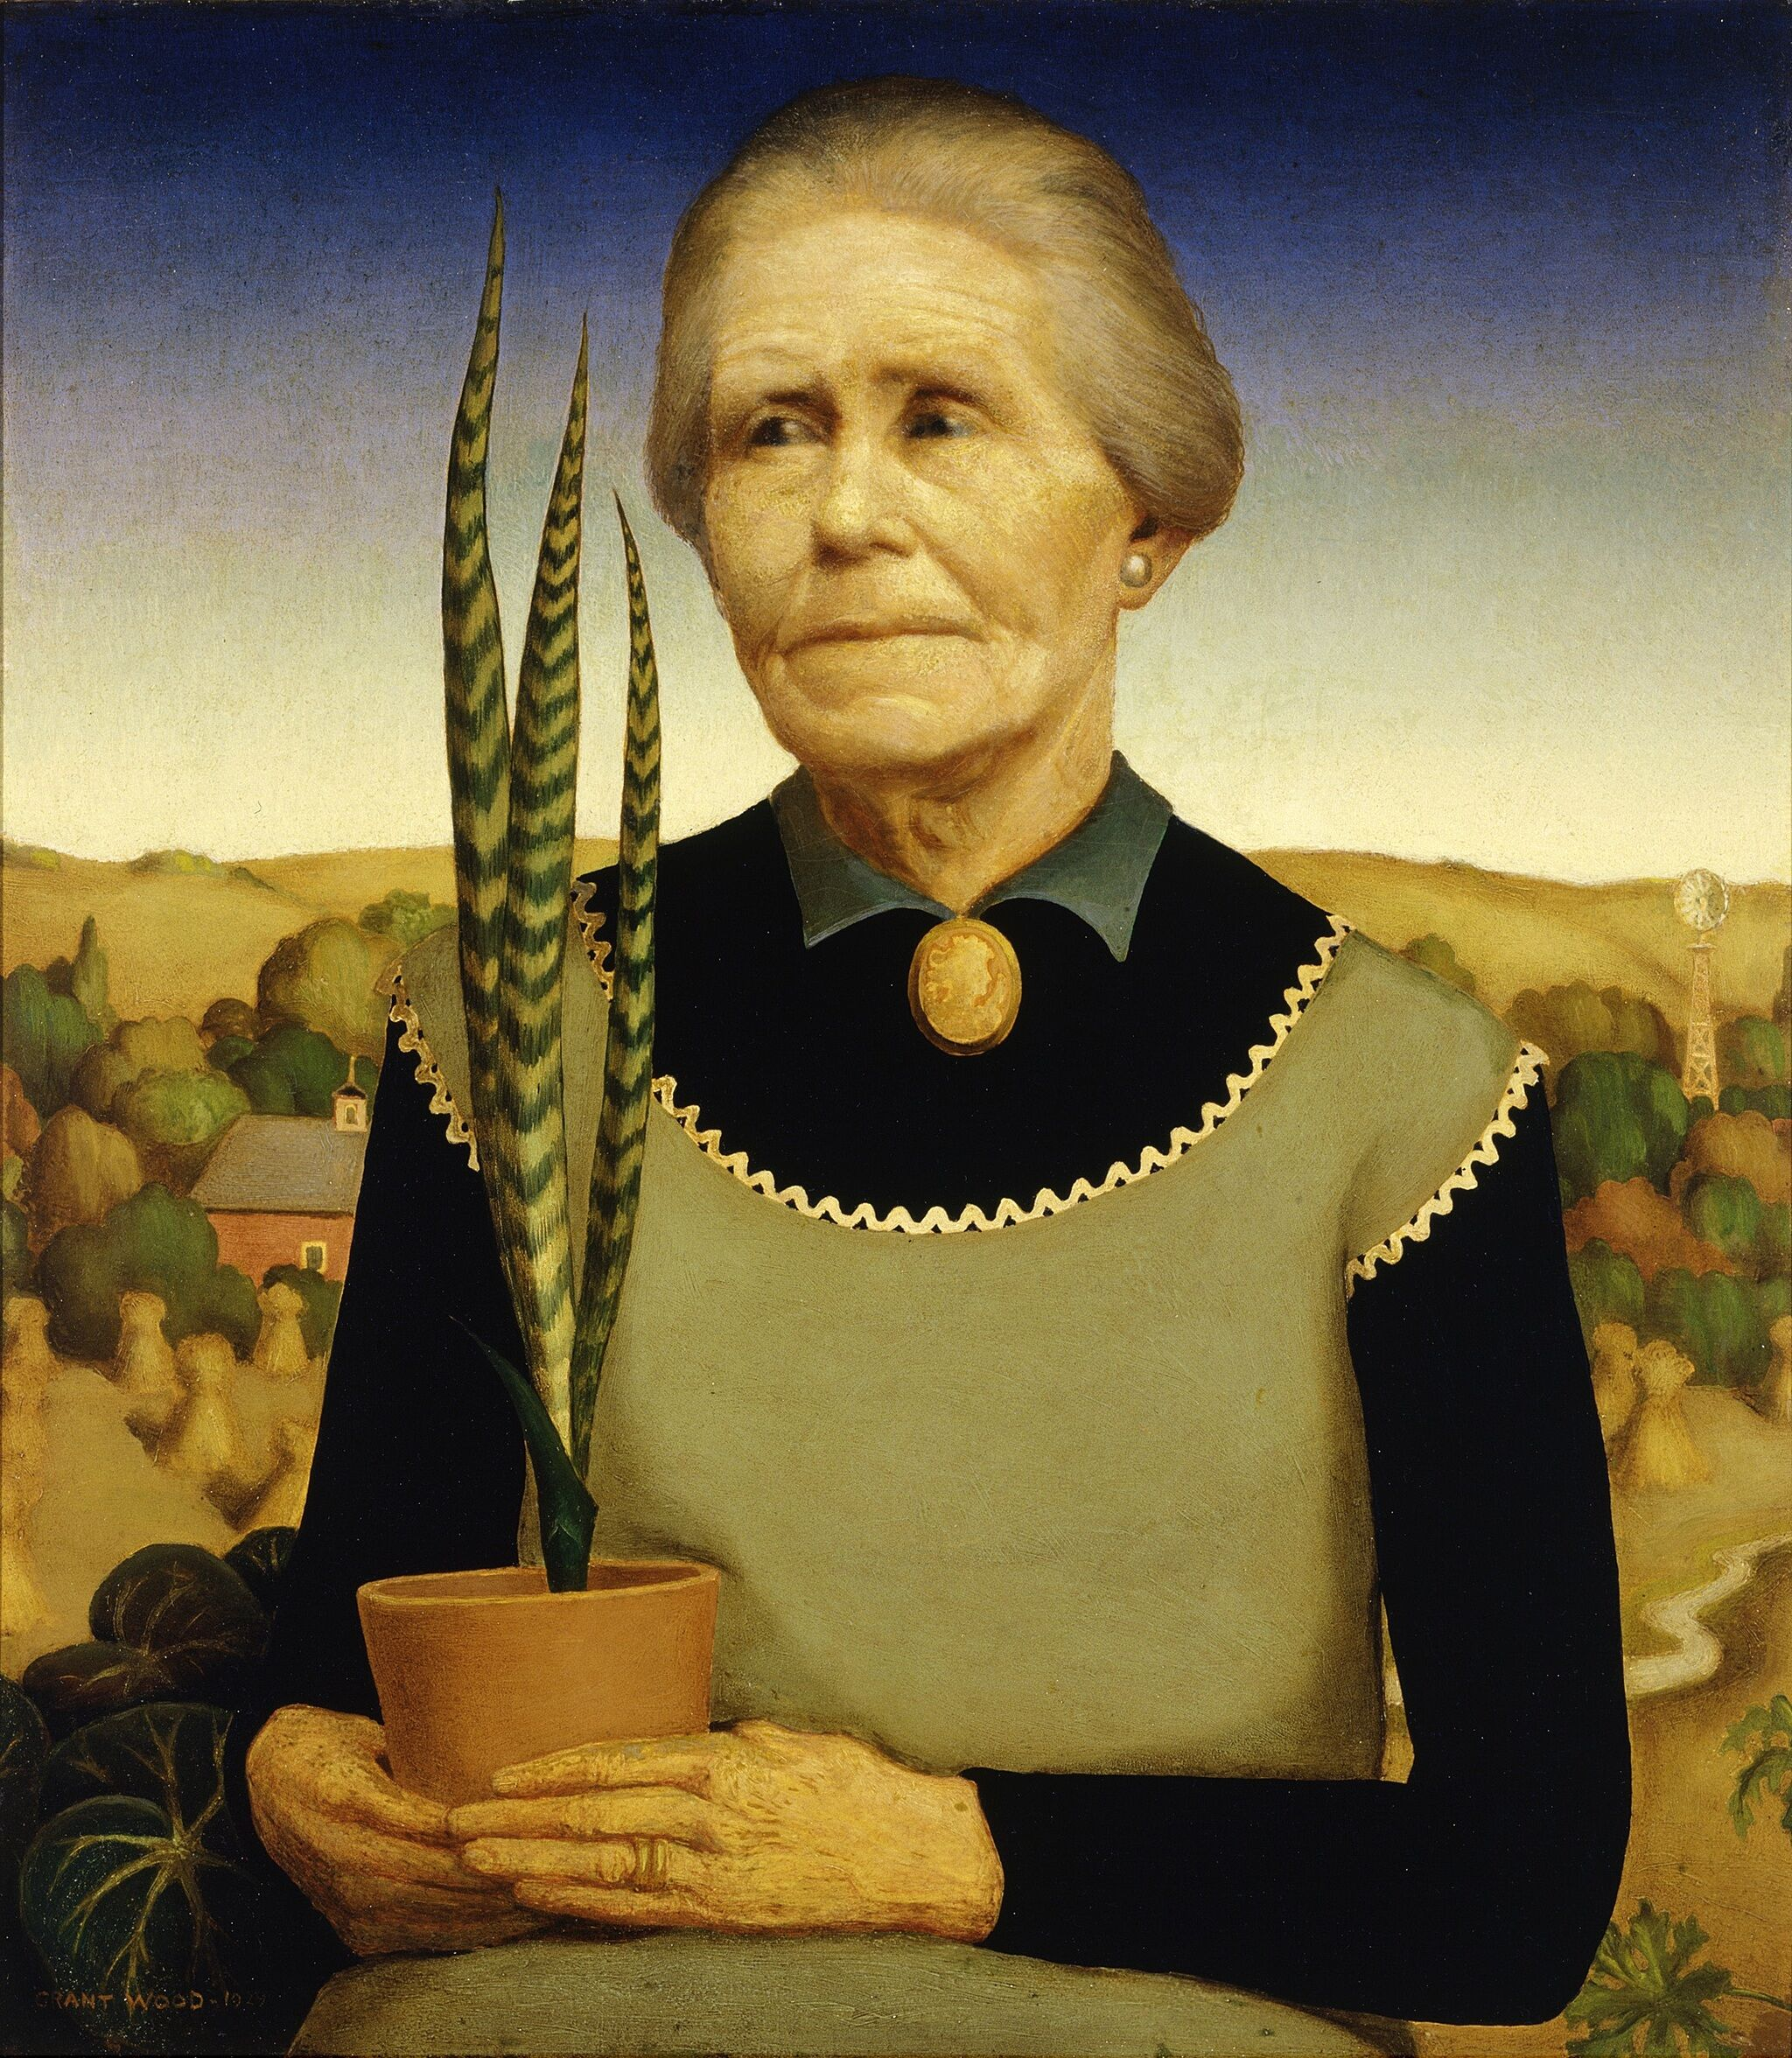 Painting of woman holding potted plant.